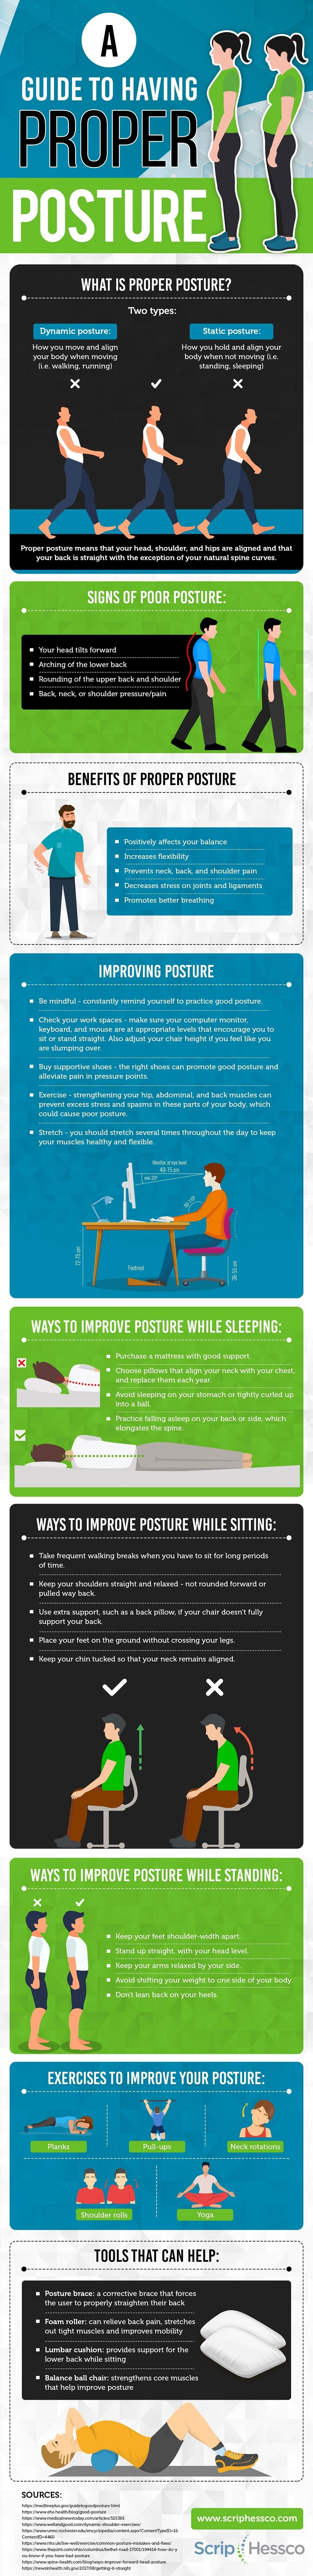 A Guide to Having Proper Posture #infographic